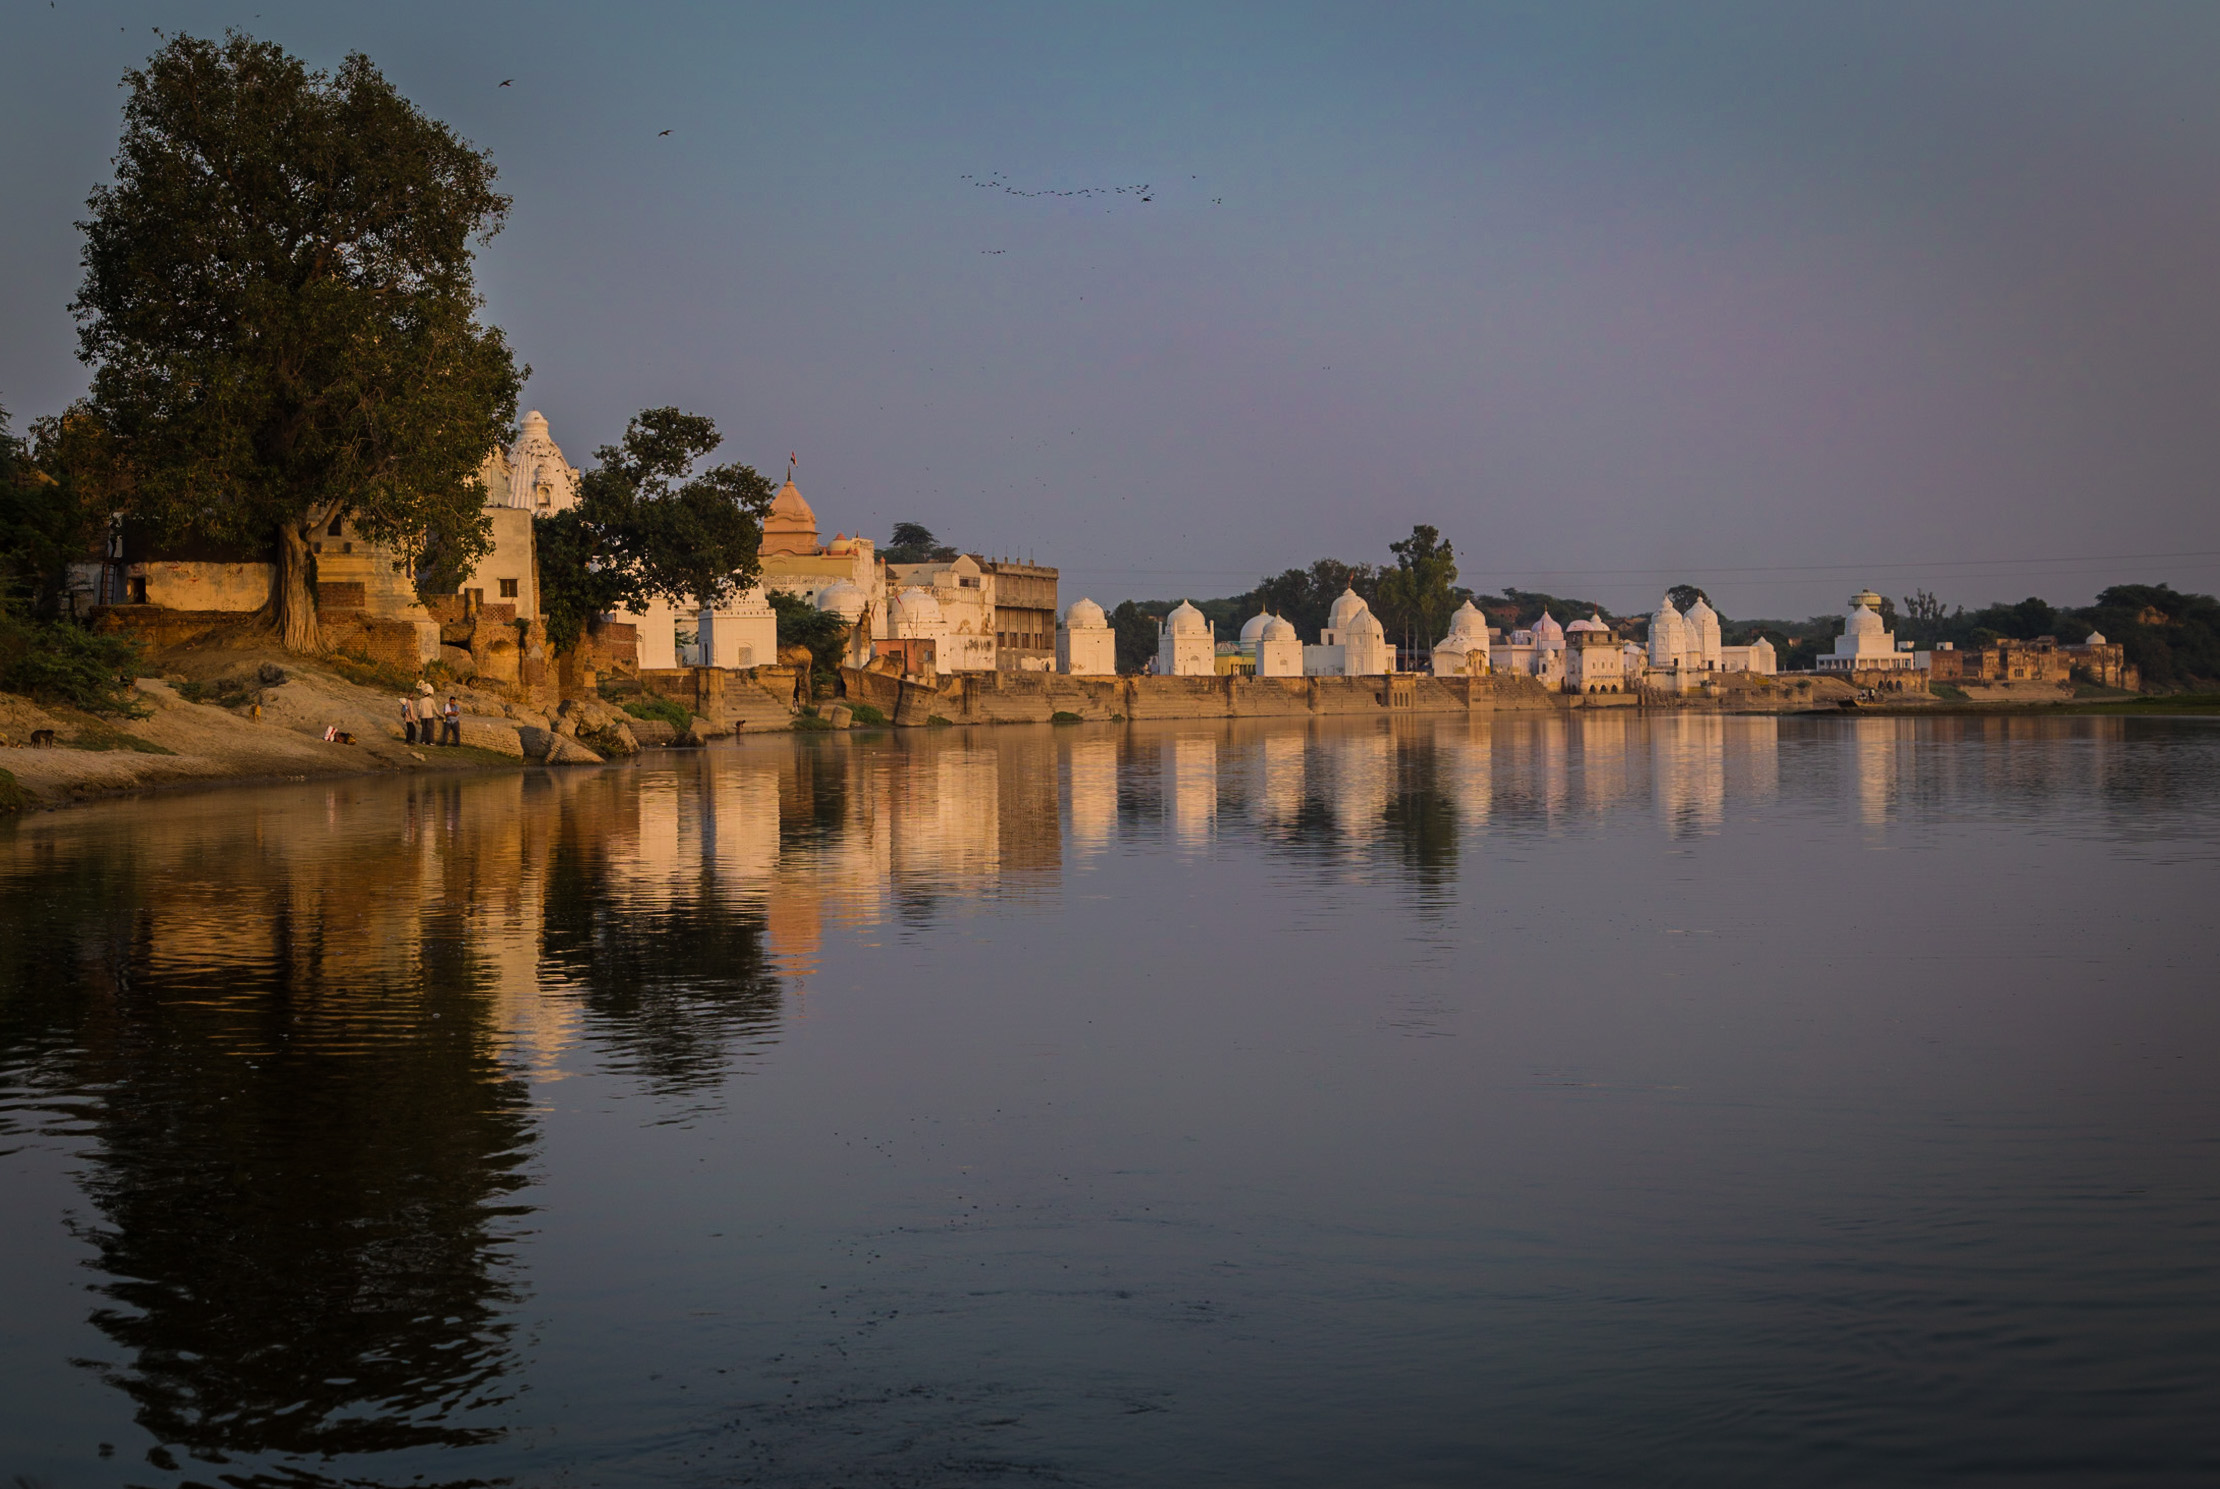 Bateshwar temples at sunset